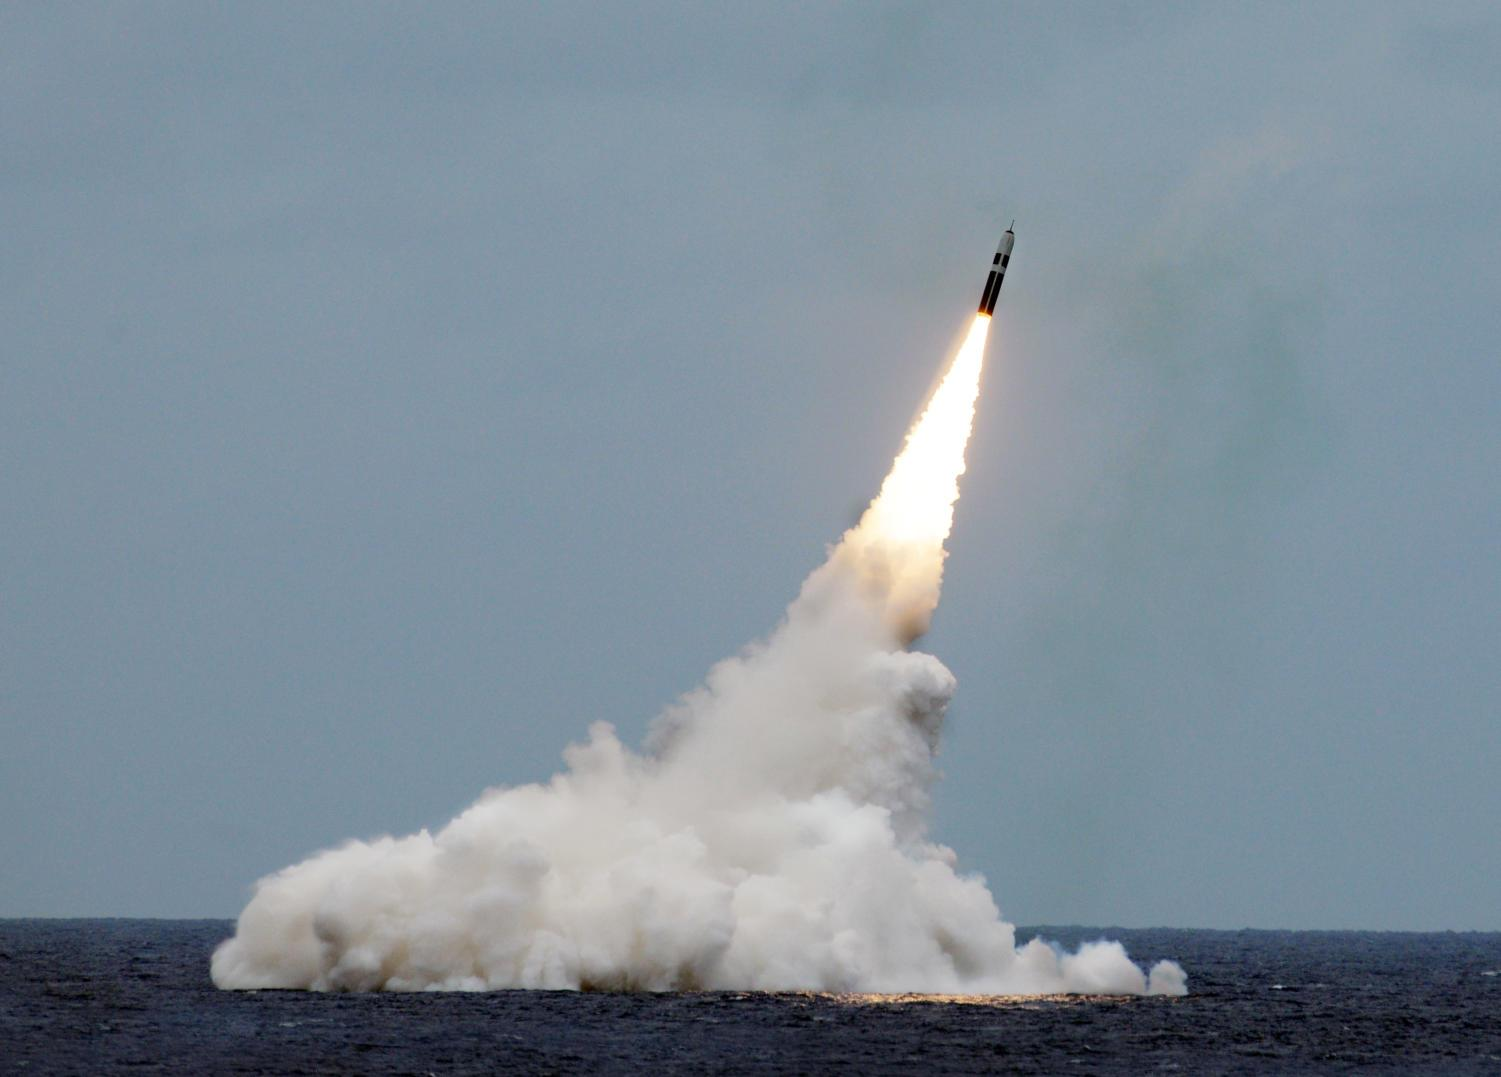 An unarmed Trident II D5 missile launches from the Ohio-class fleet ballistic-missile submarine USS Maryland (SSBN 738) off the coast of Florida.